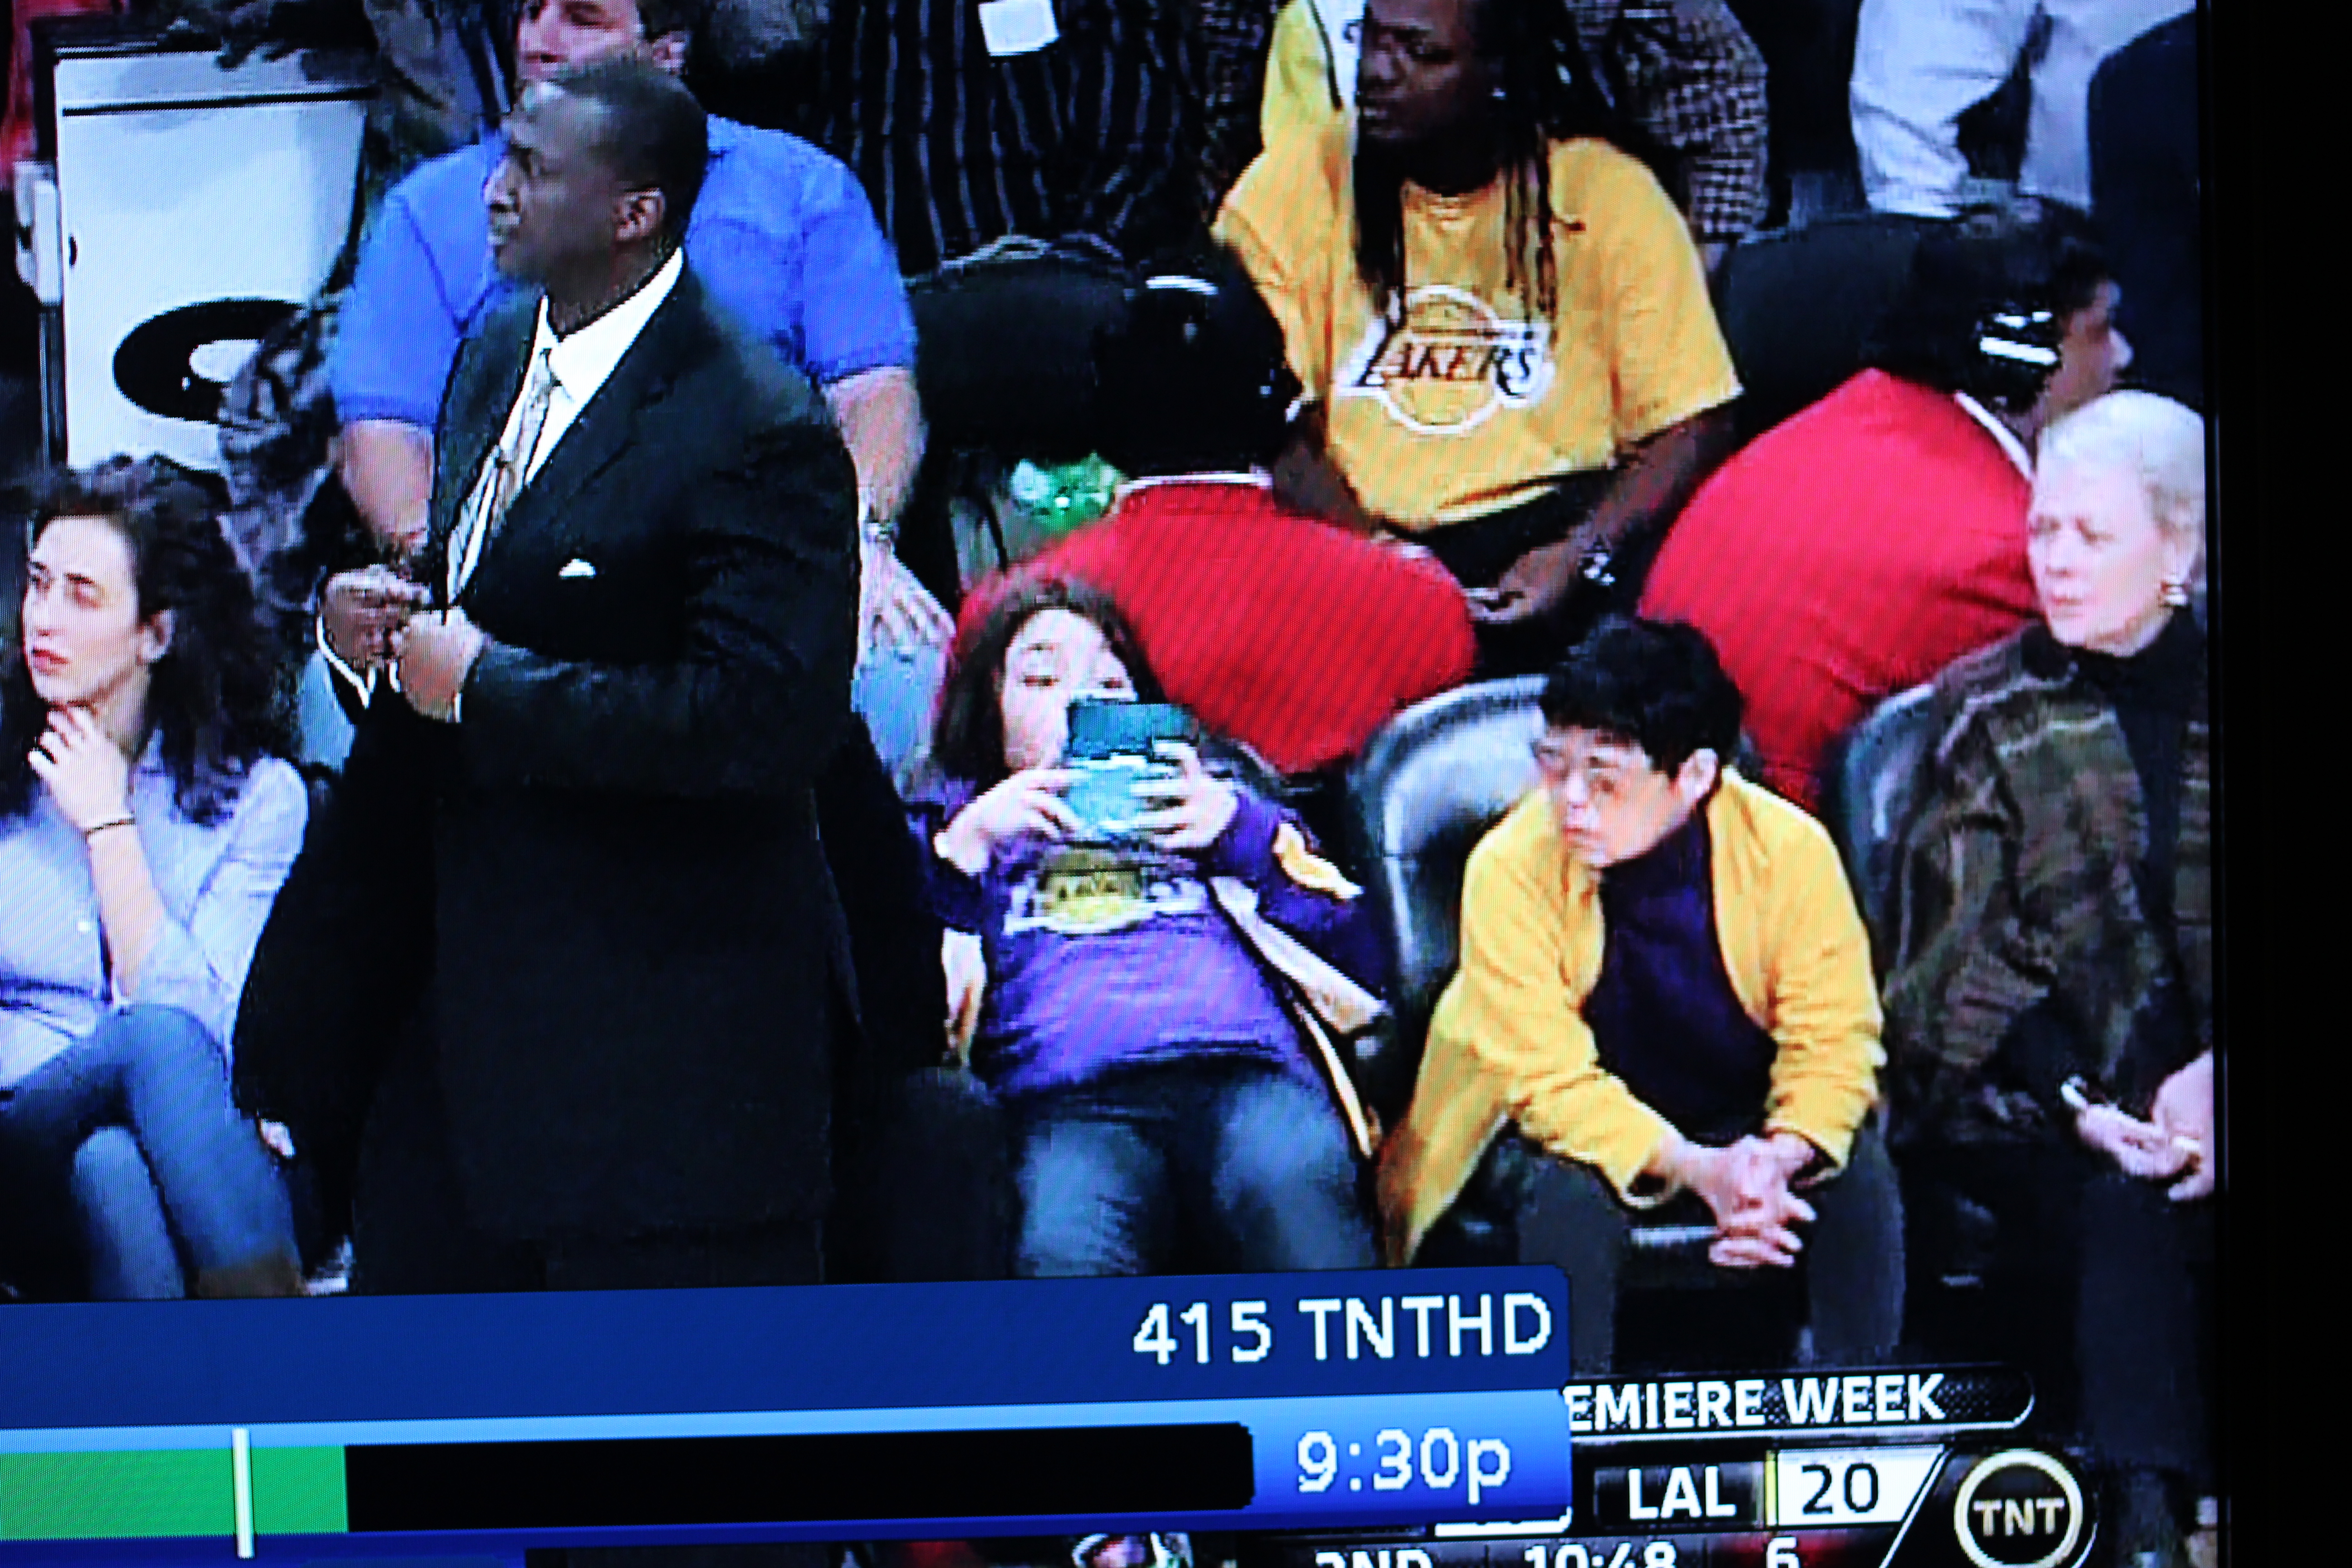 Asian lady courtside lakers